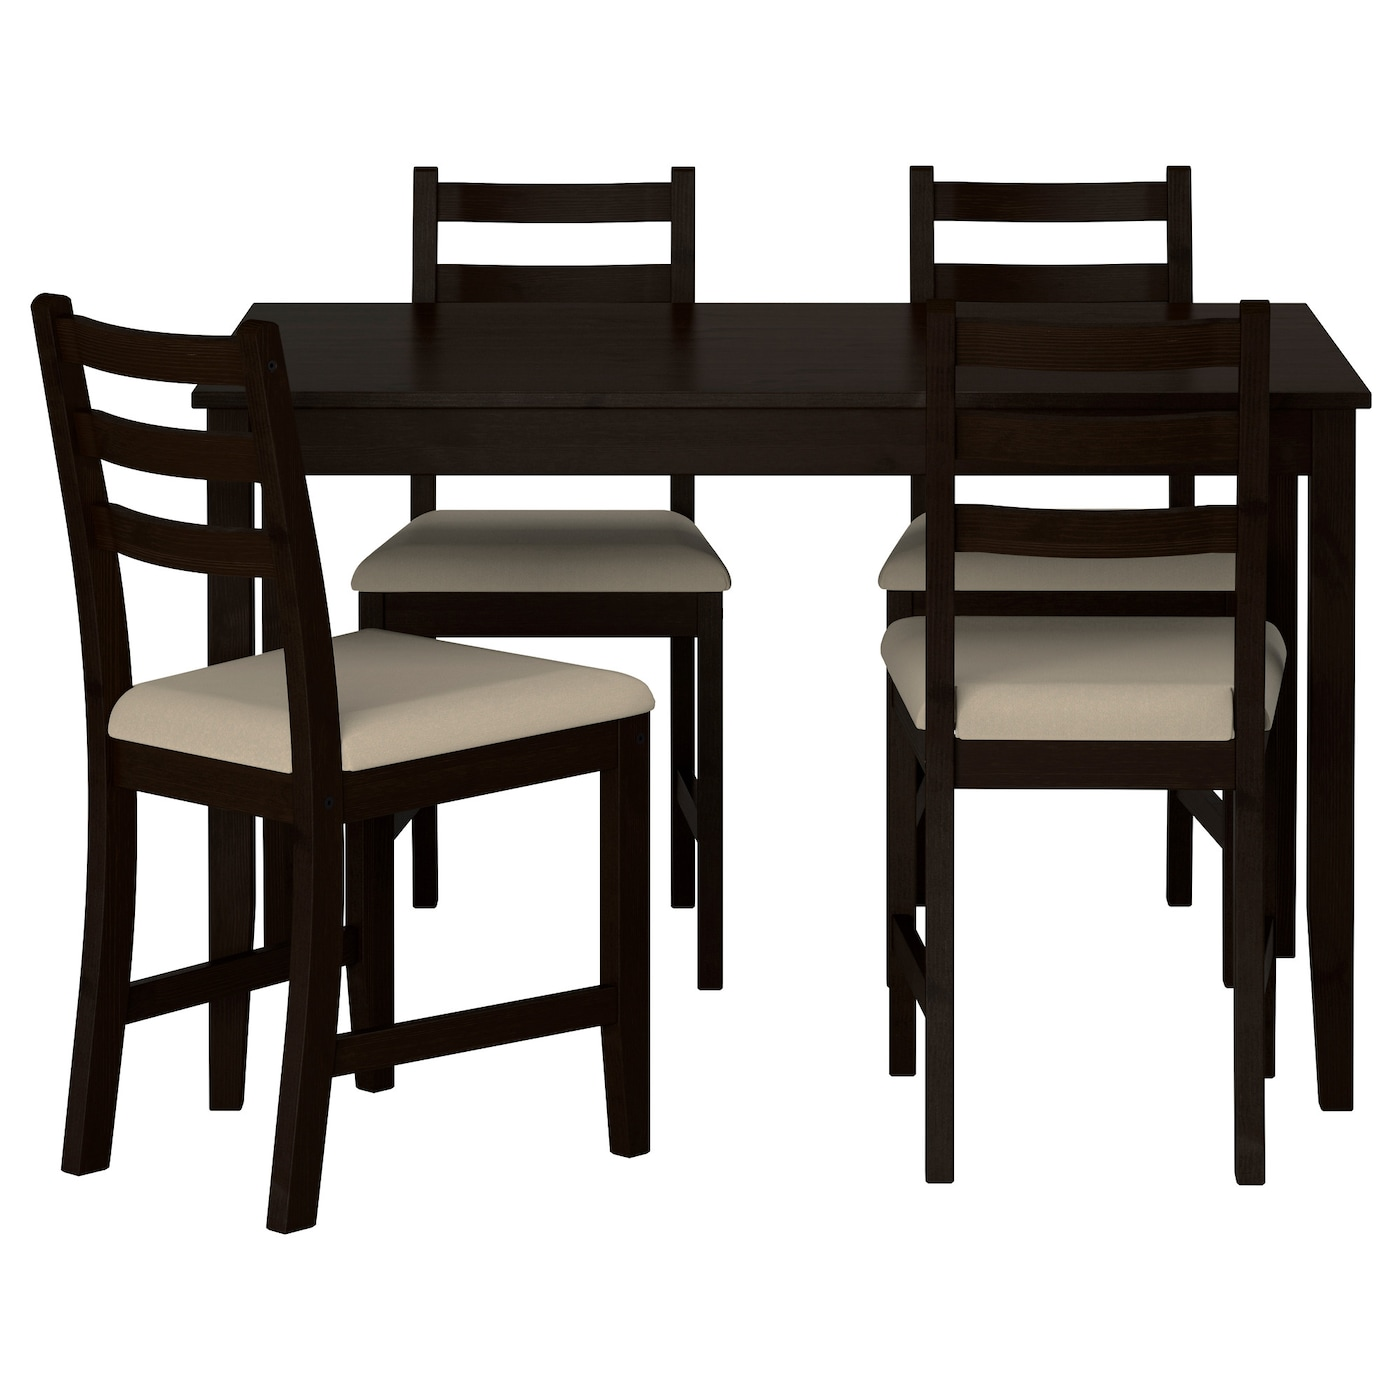 Lerhamn table and 4 chairs black brown ramna beige 118x74 for Ikea dining sets usa